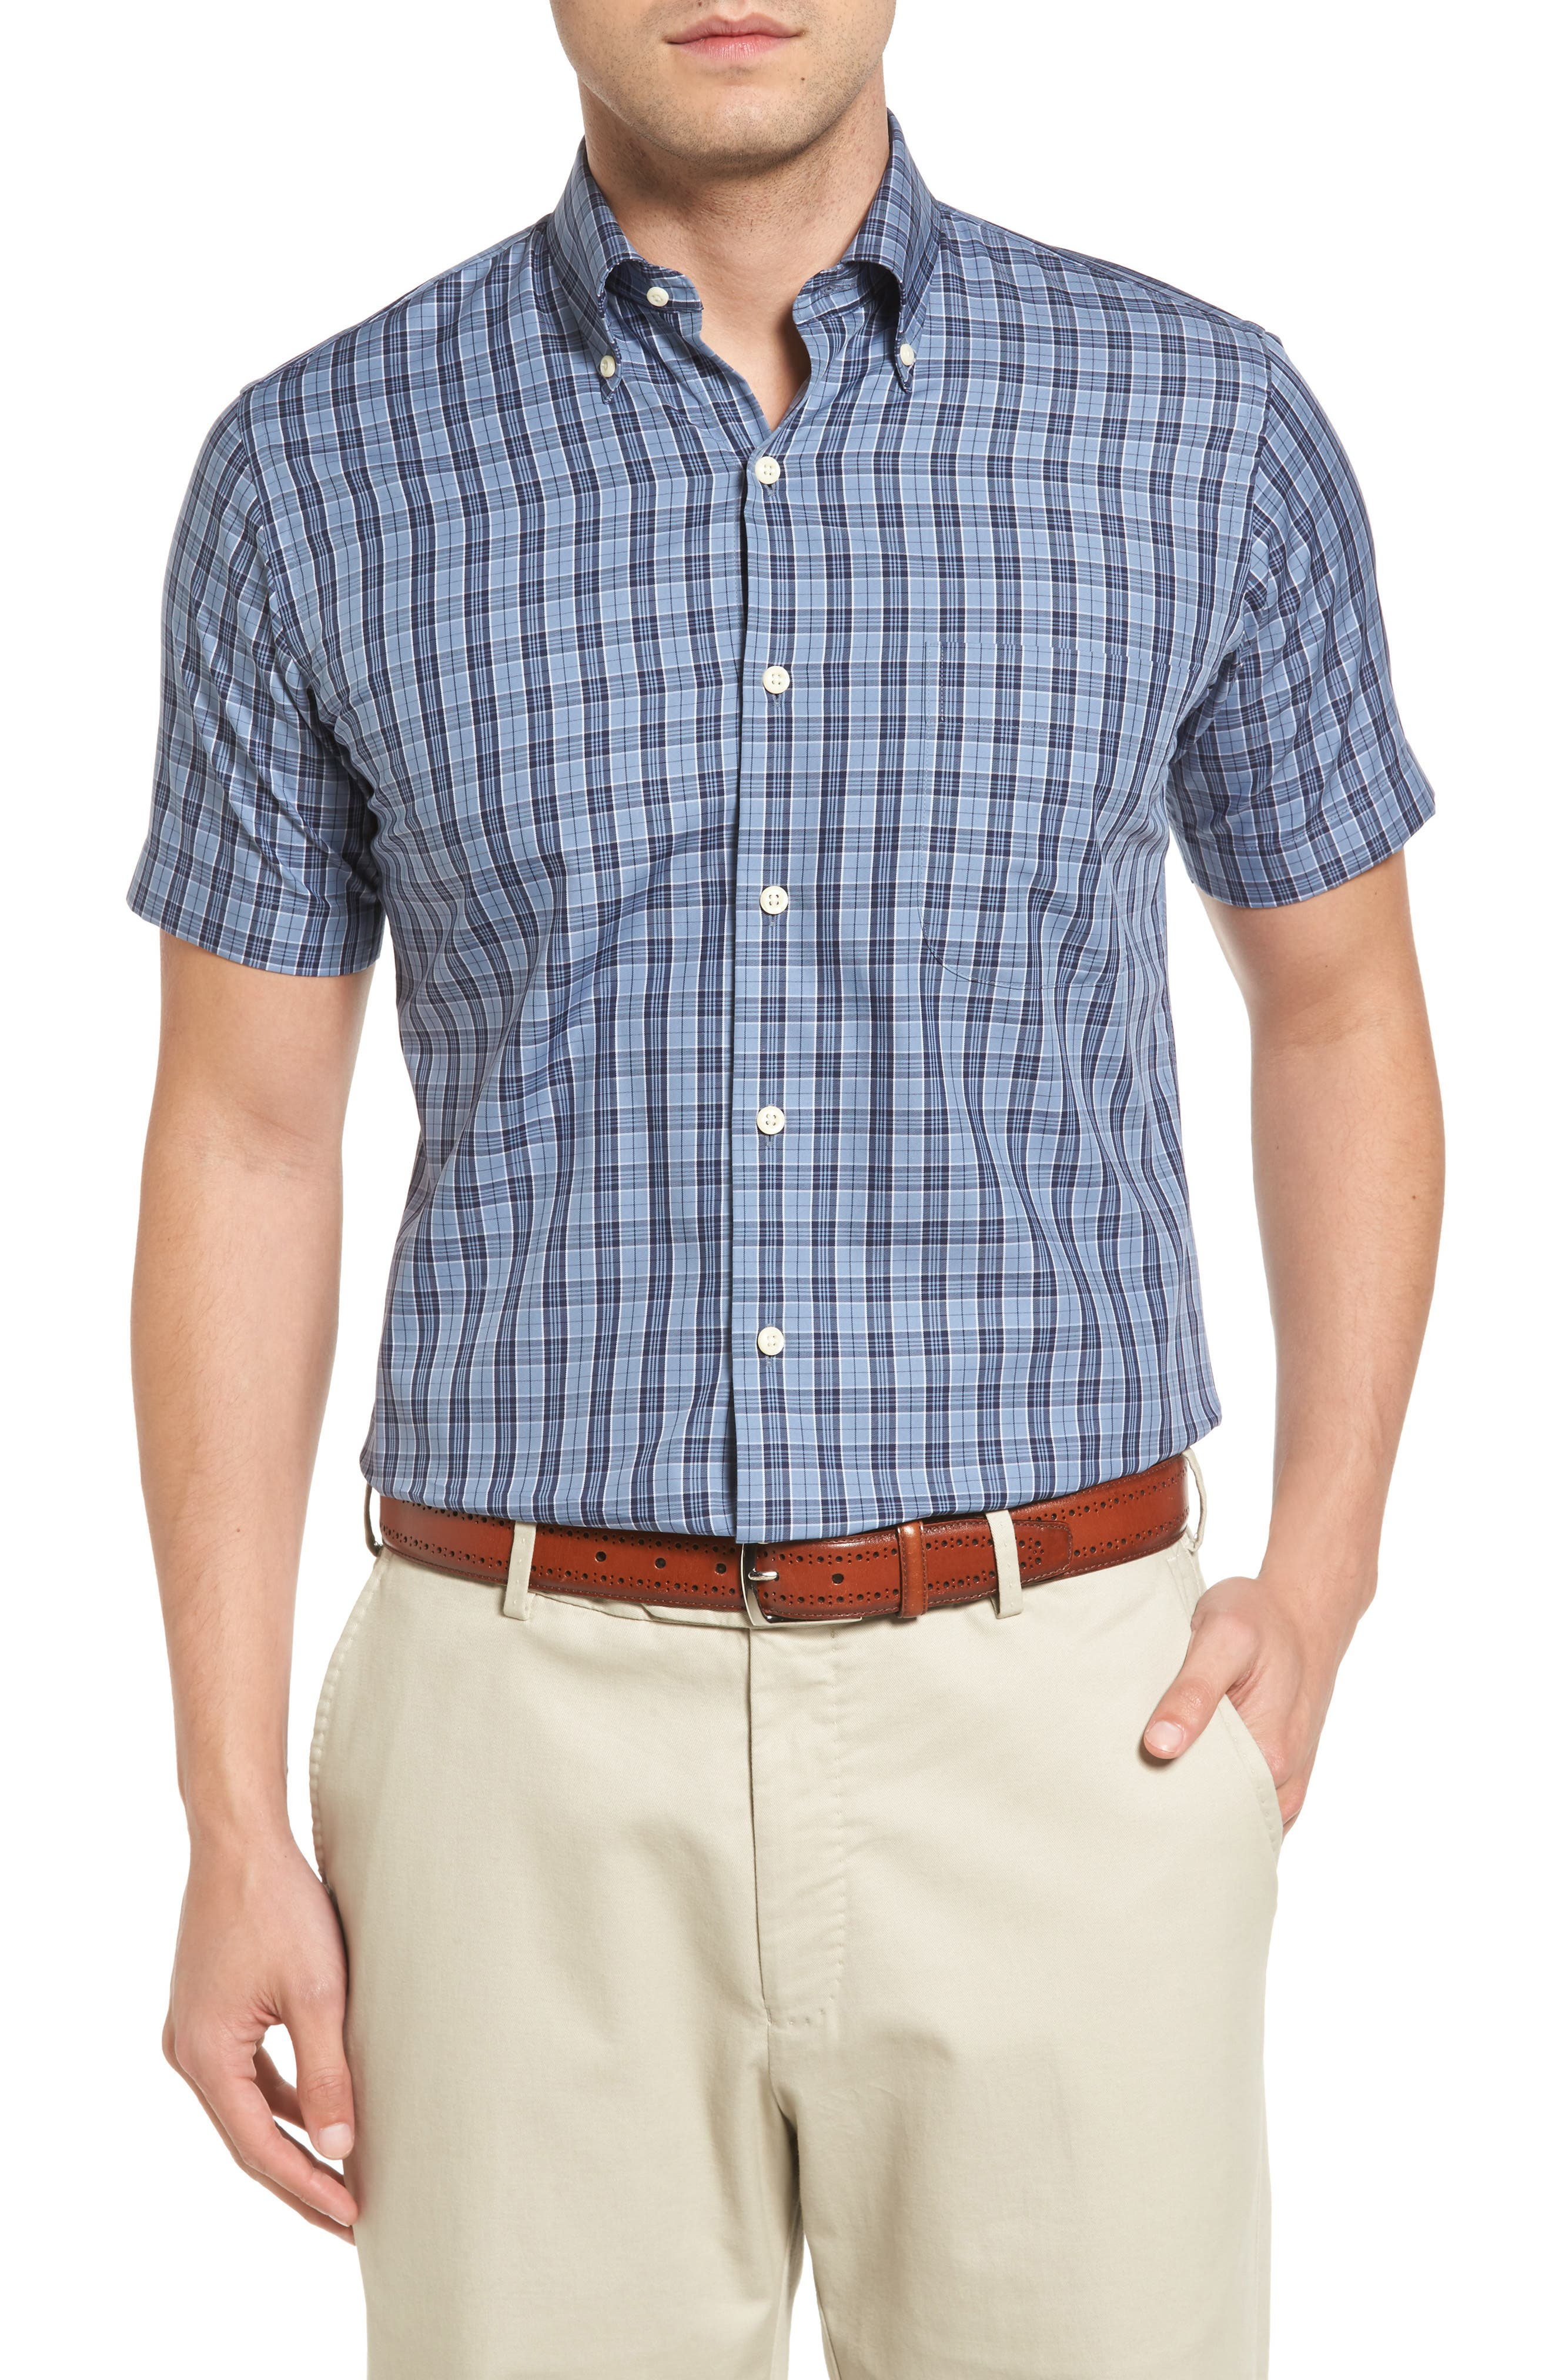 Alternate Image 1 Selected - Peter Millar Regular Fit Short Sleeve Stormy Plaid Sport Shirt